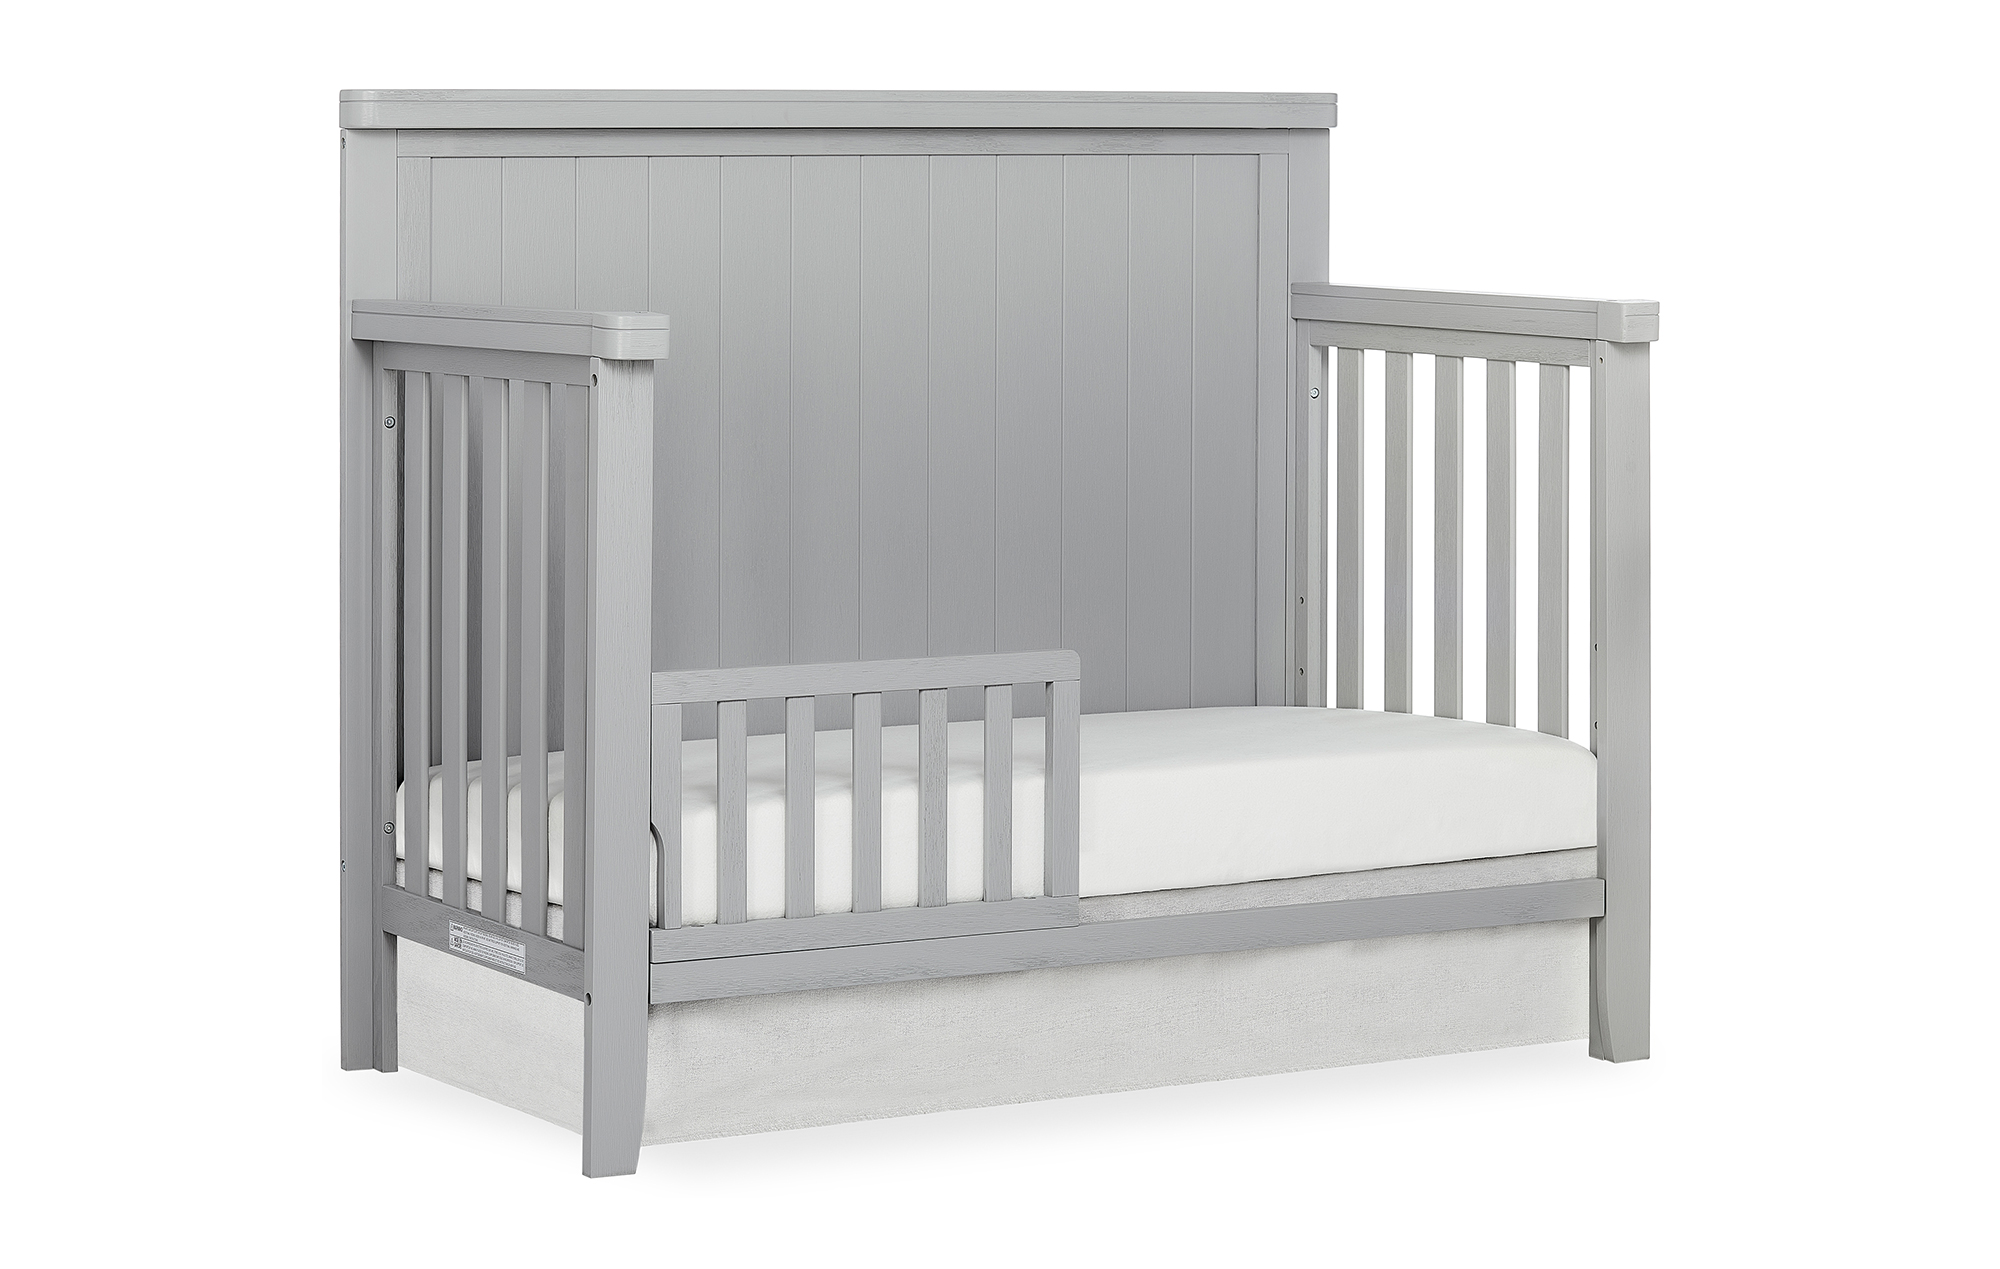 772BR-PG Redwood Toddler Bed